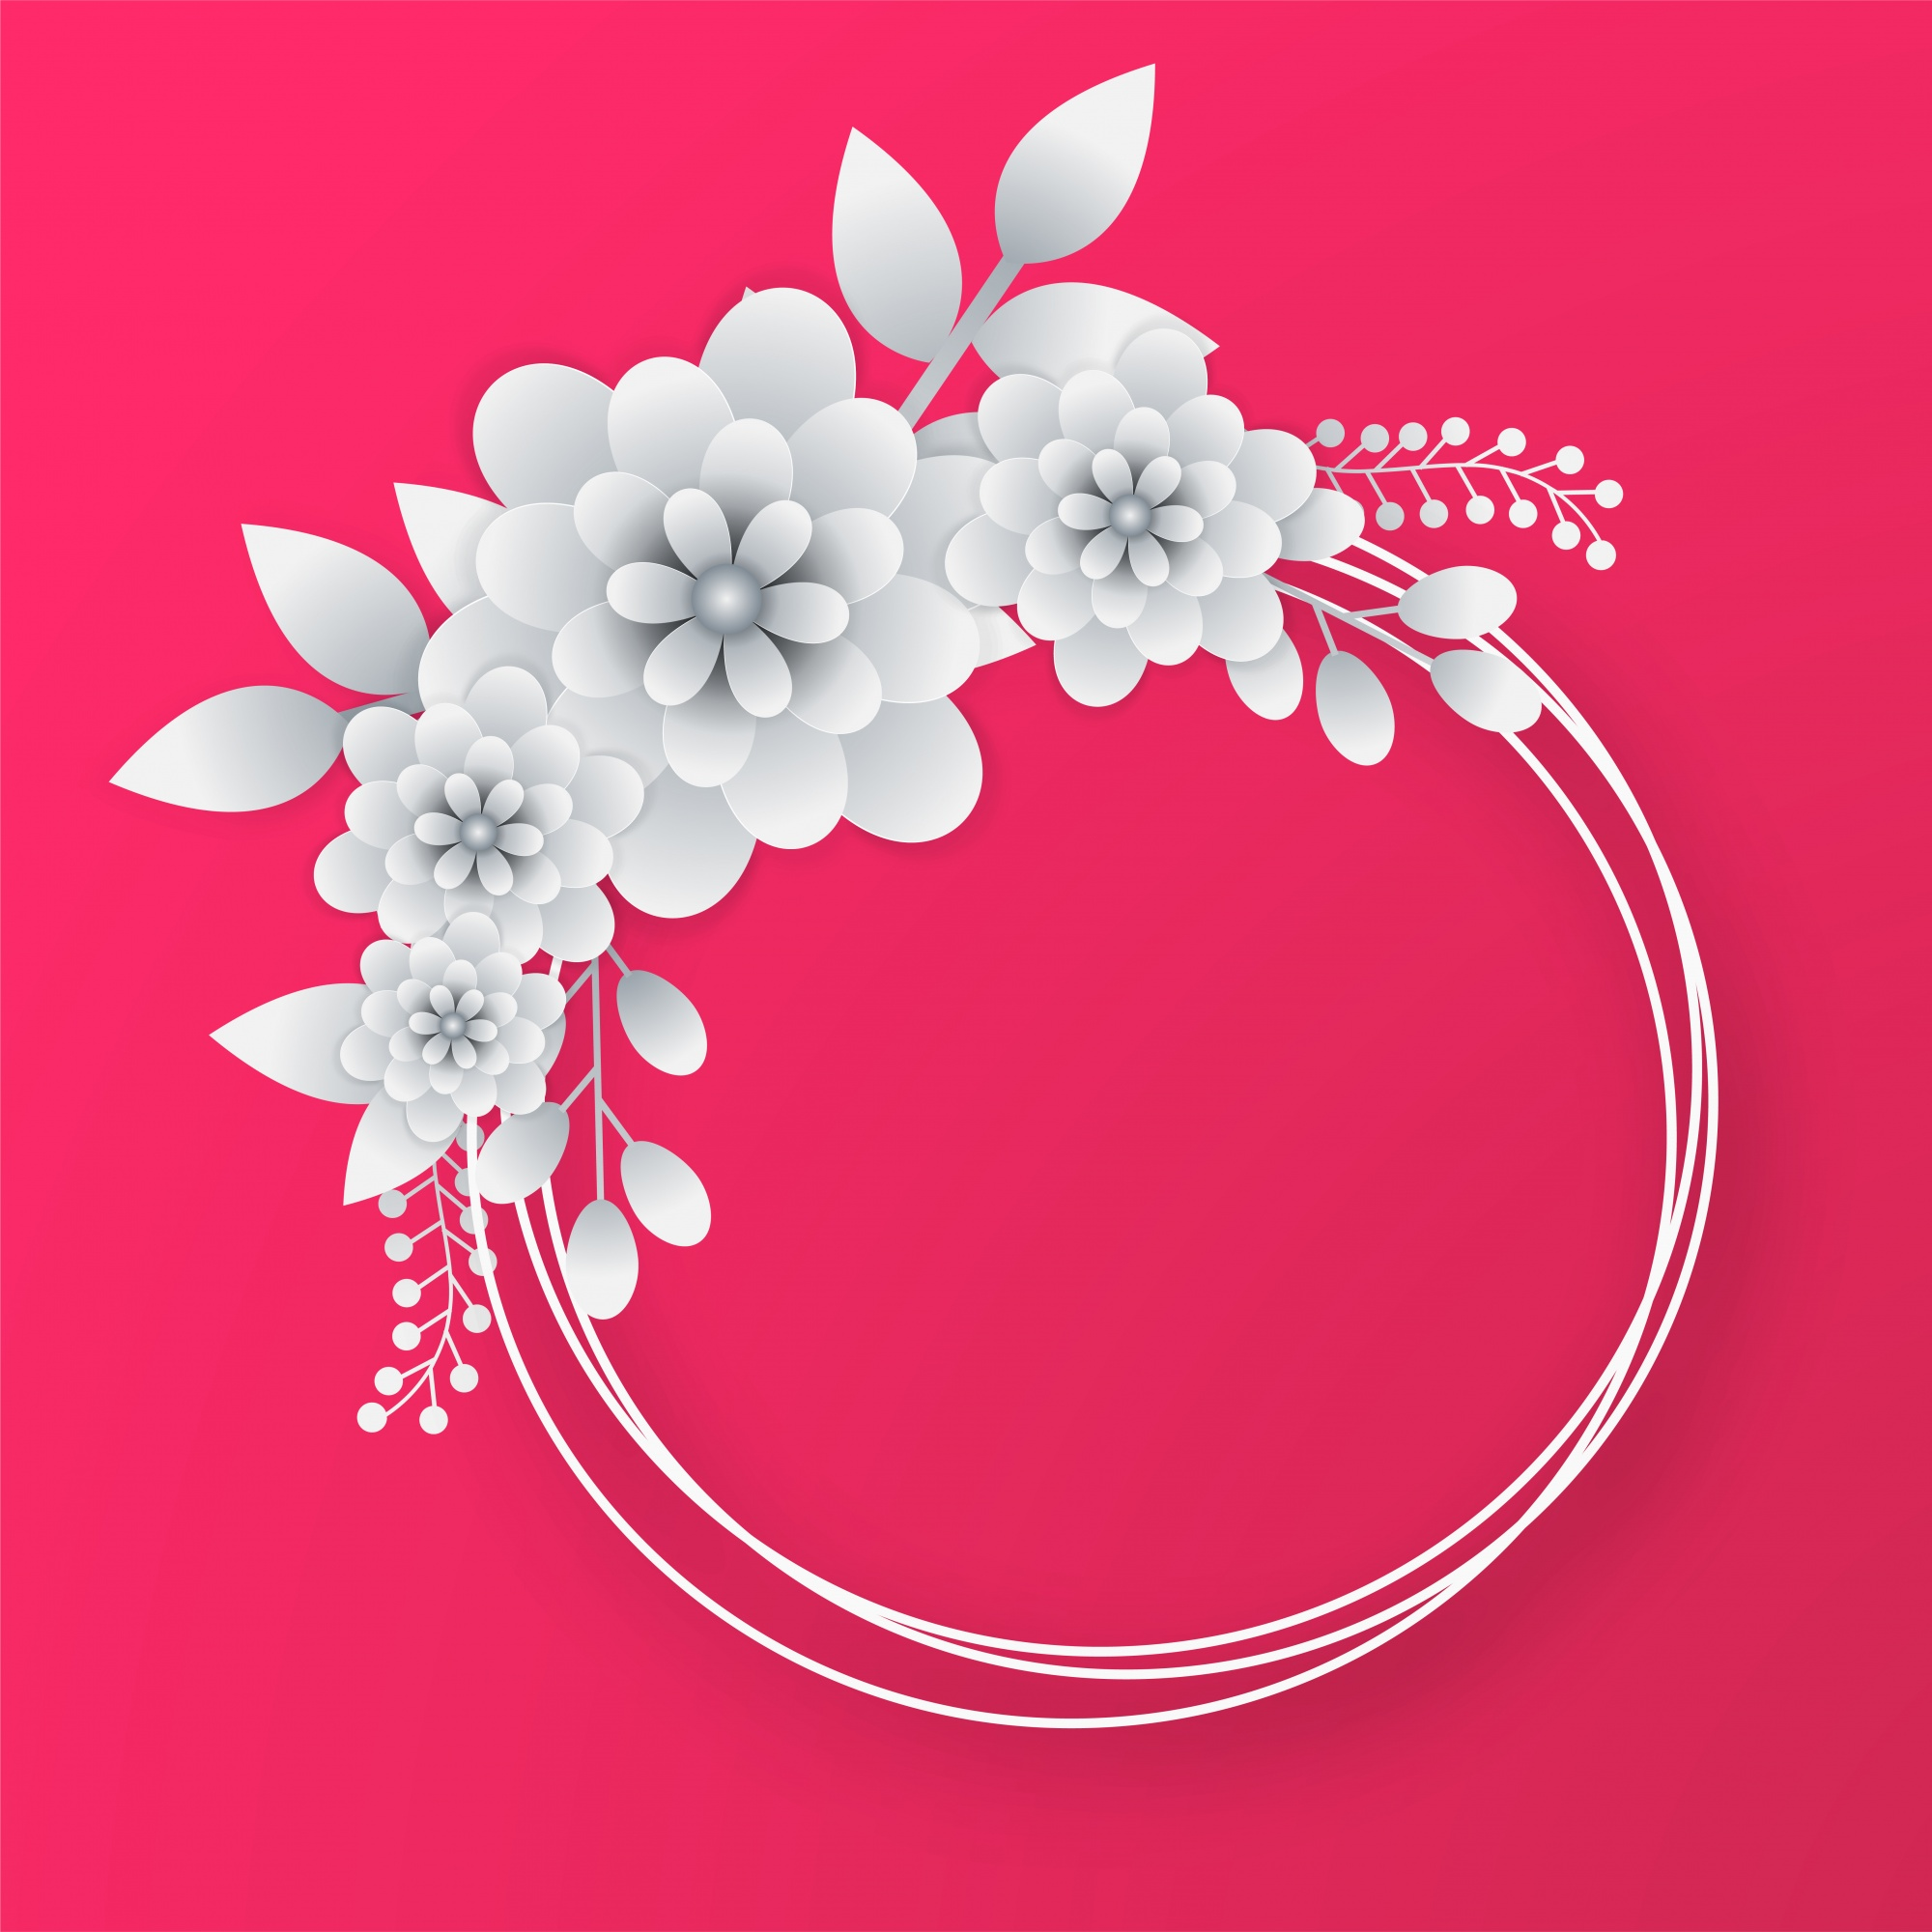 White paper flowers with circular frame on pink background.